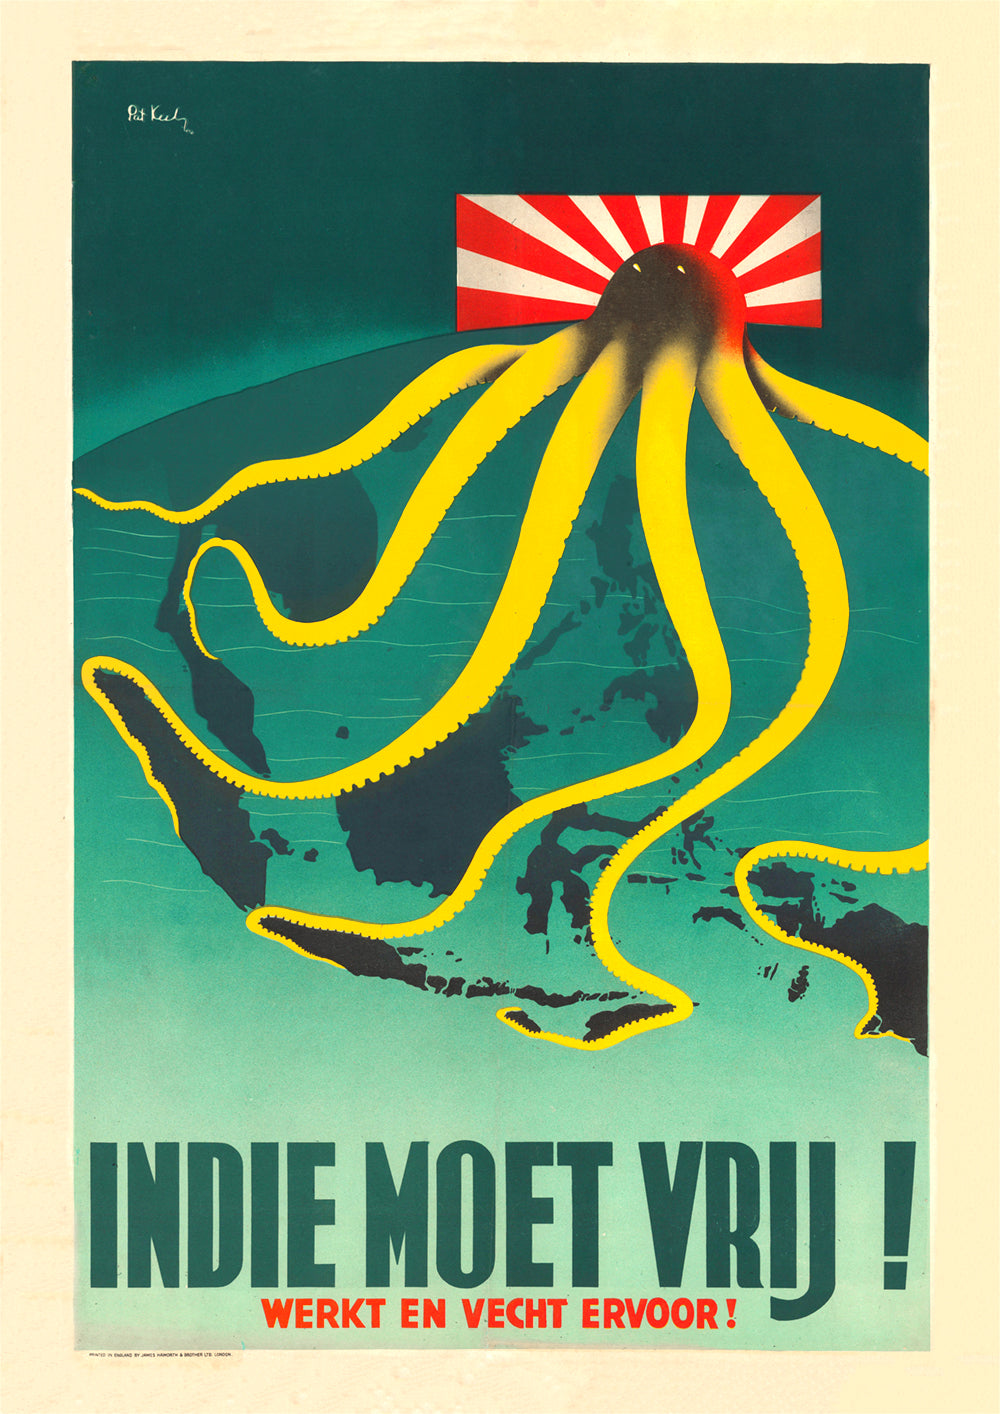 The Indies must be free! – Dutch World War Two poster